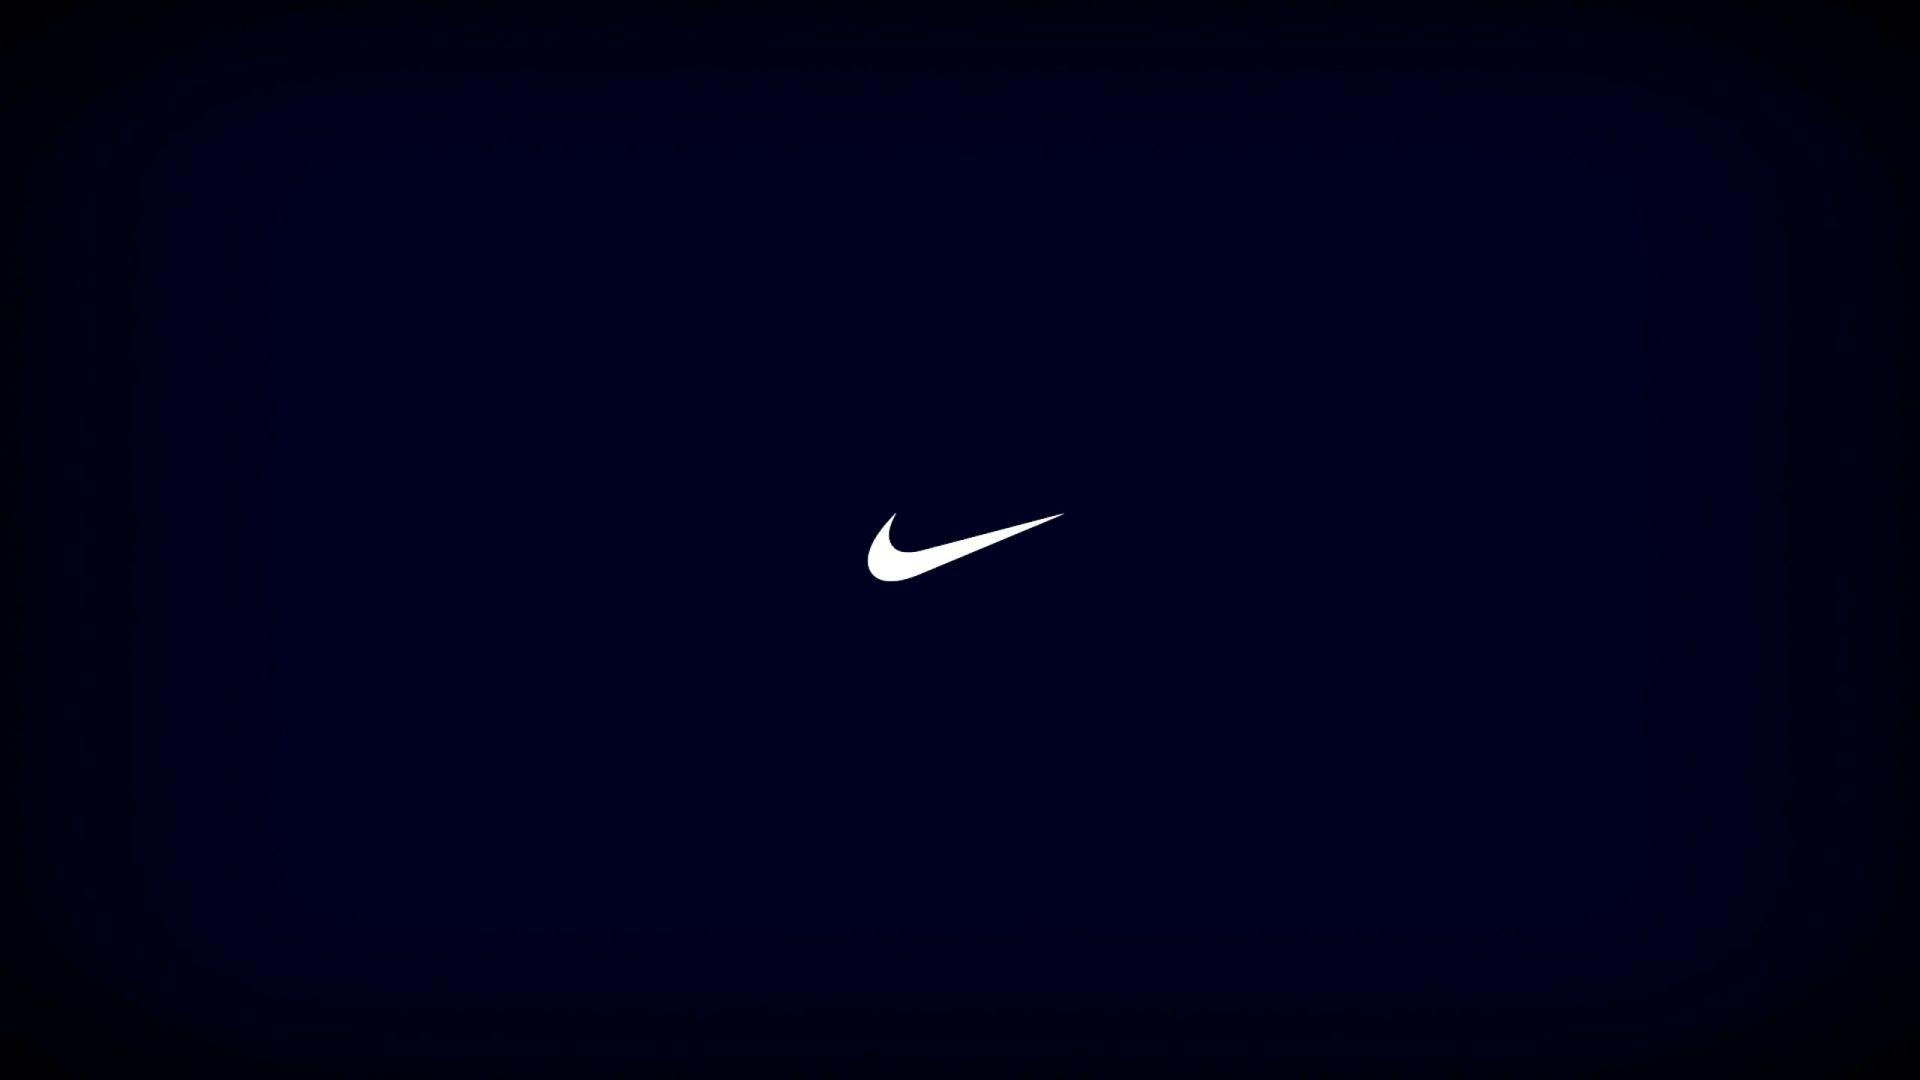 Nike Logo Wallpapers Top Free Nike Logo Backgrounds Wallpaperaccess